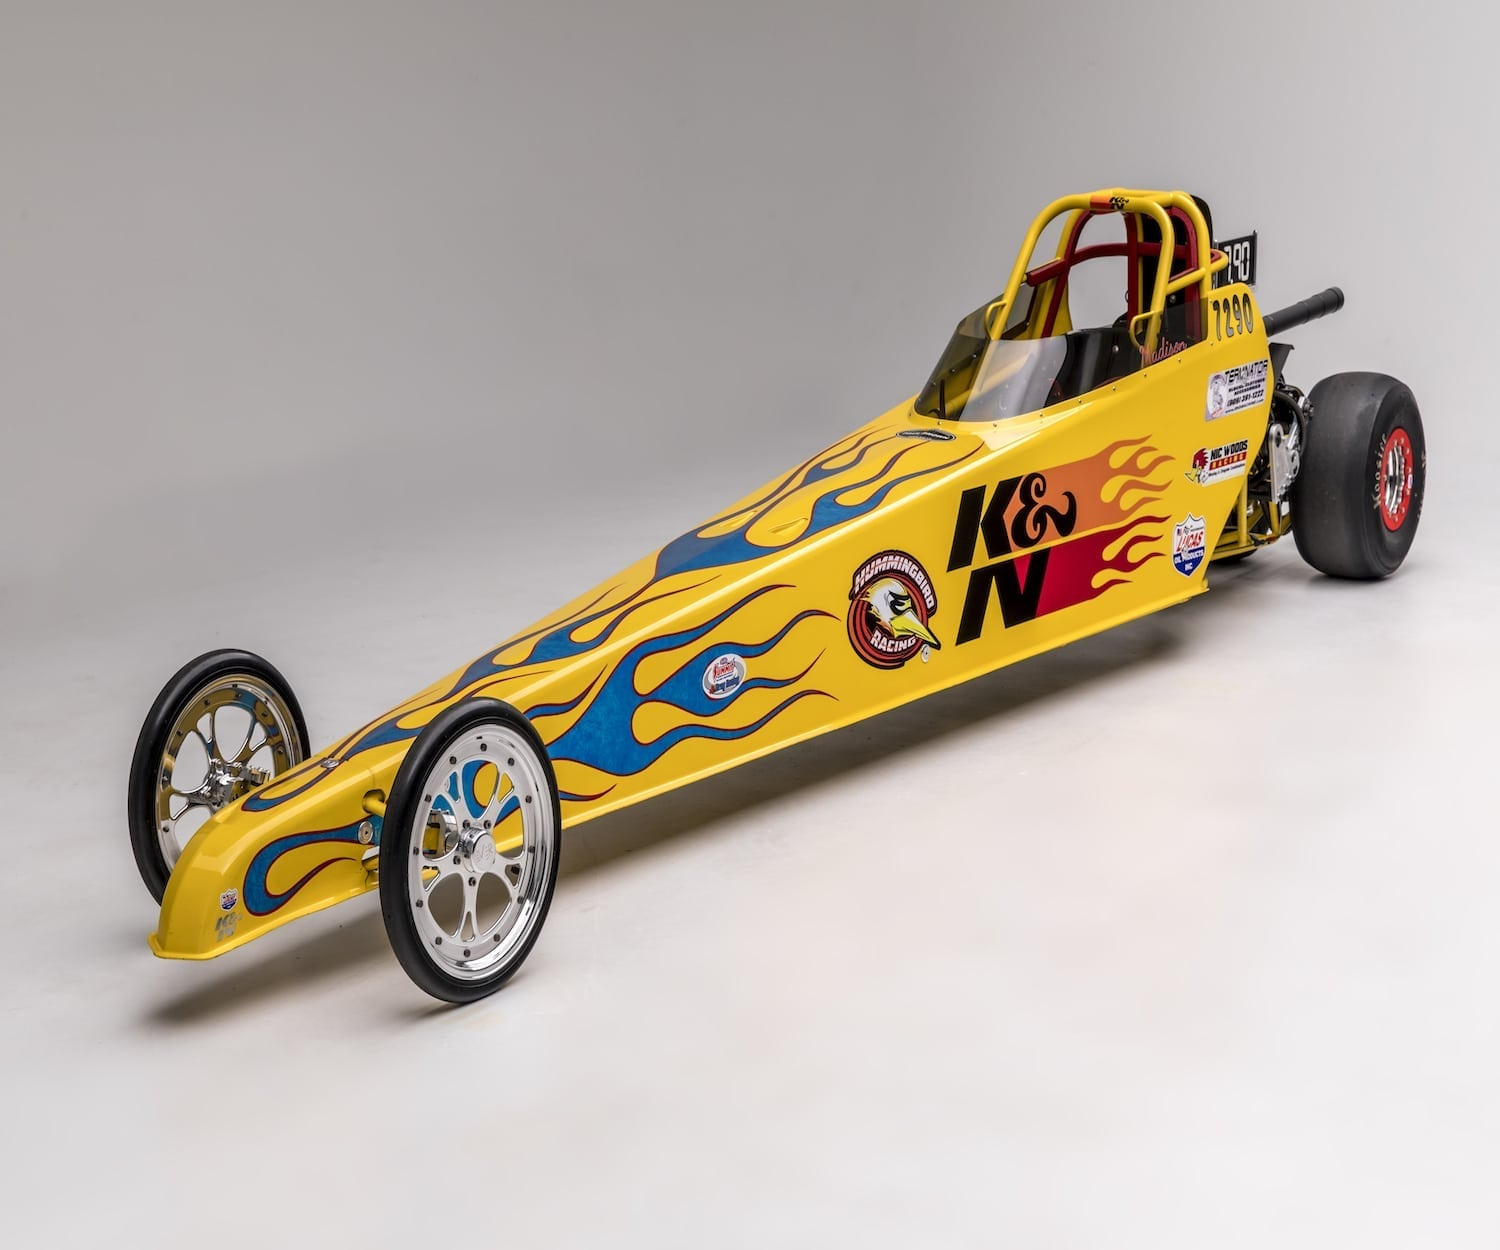 Sidewalk Speedsters: The Grown-Up World of Children's Cars Exhibit